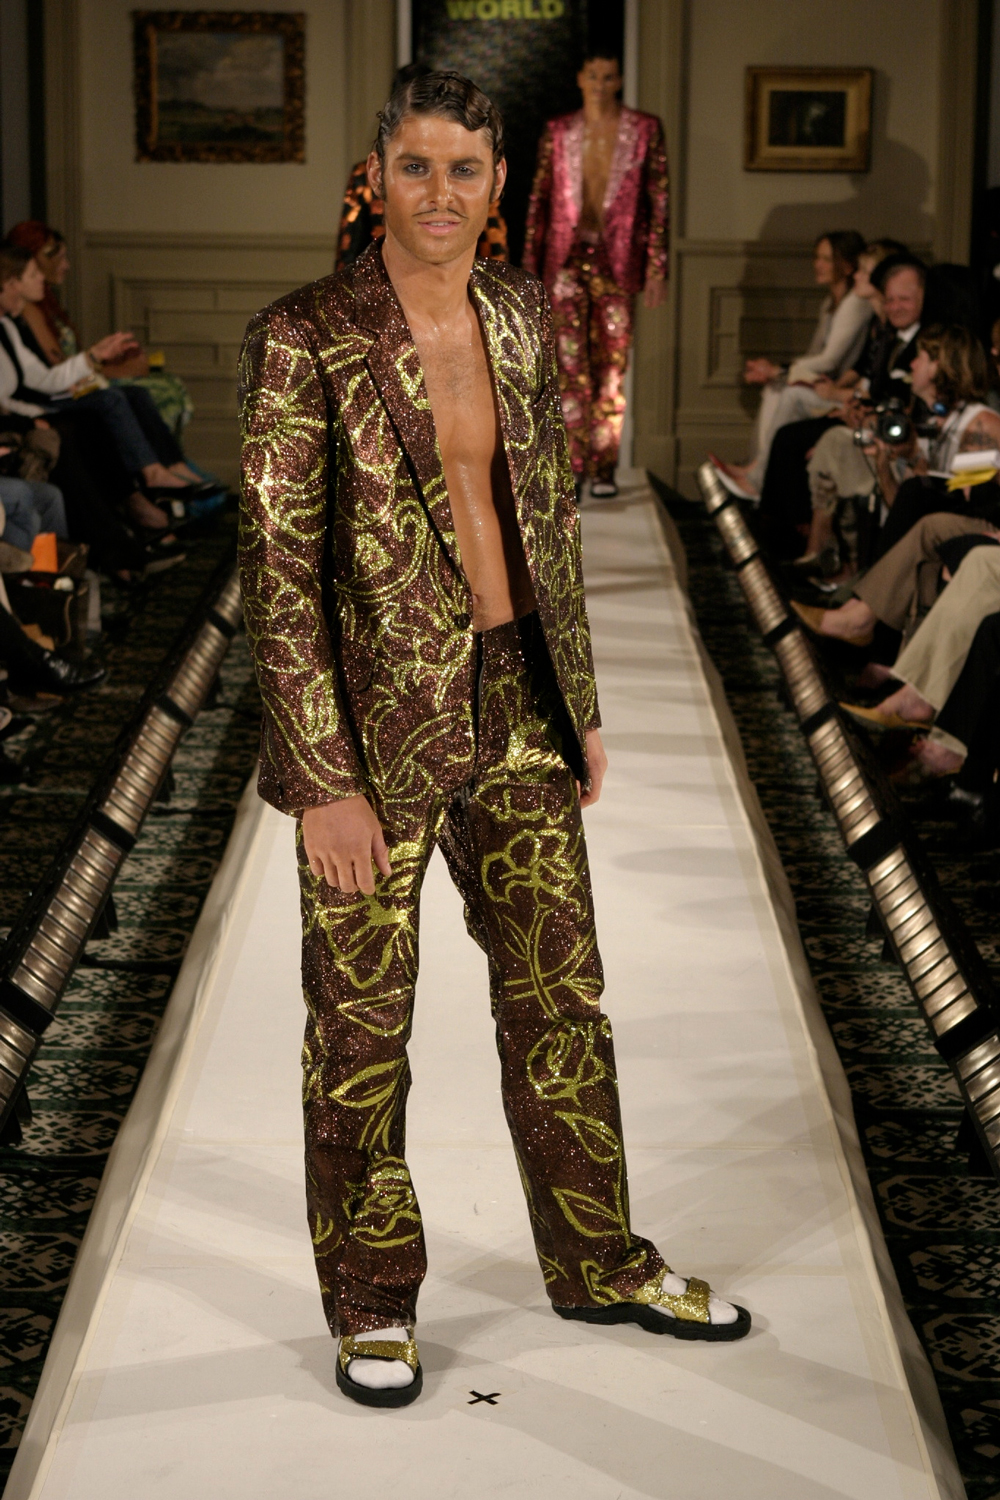 The Poppies and the Mustard Plaster, 2003, Glitter on Fabric, WORLD Winter Collection, NZ Fashion Week. Photo: Michael Ng.